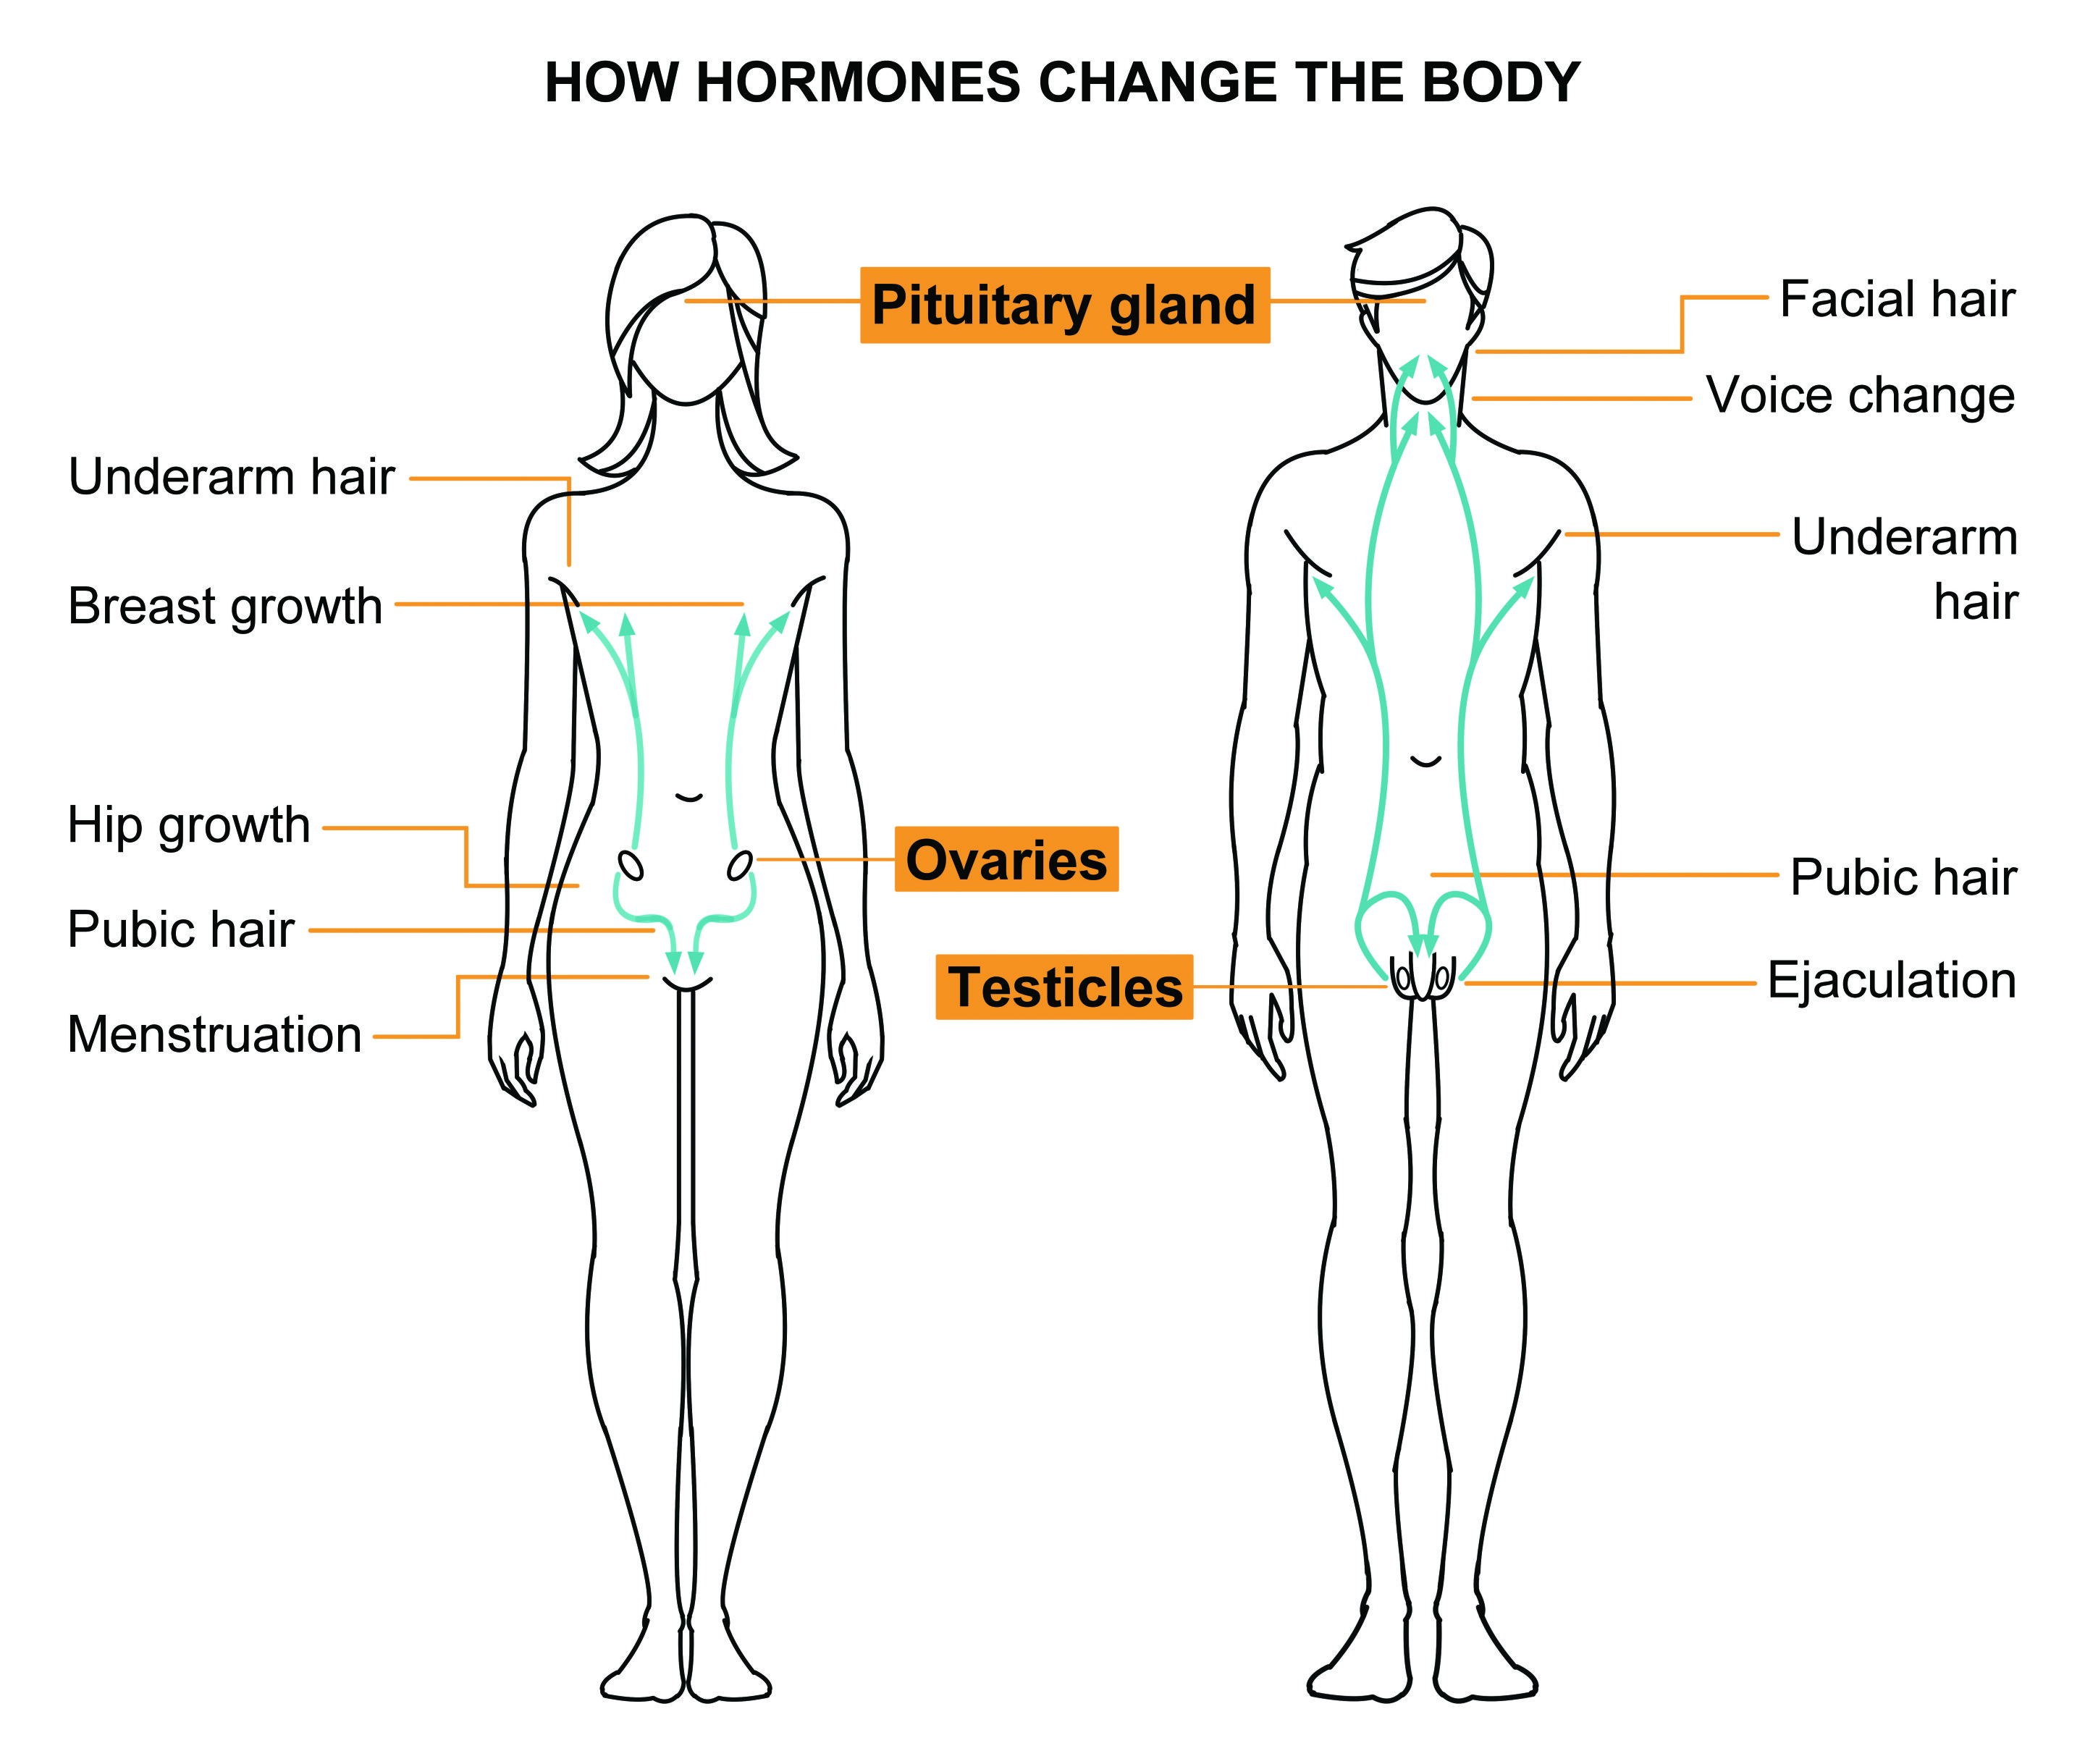 Hormonal Male-Female diagram